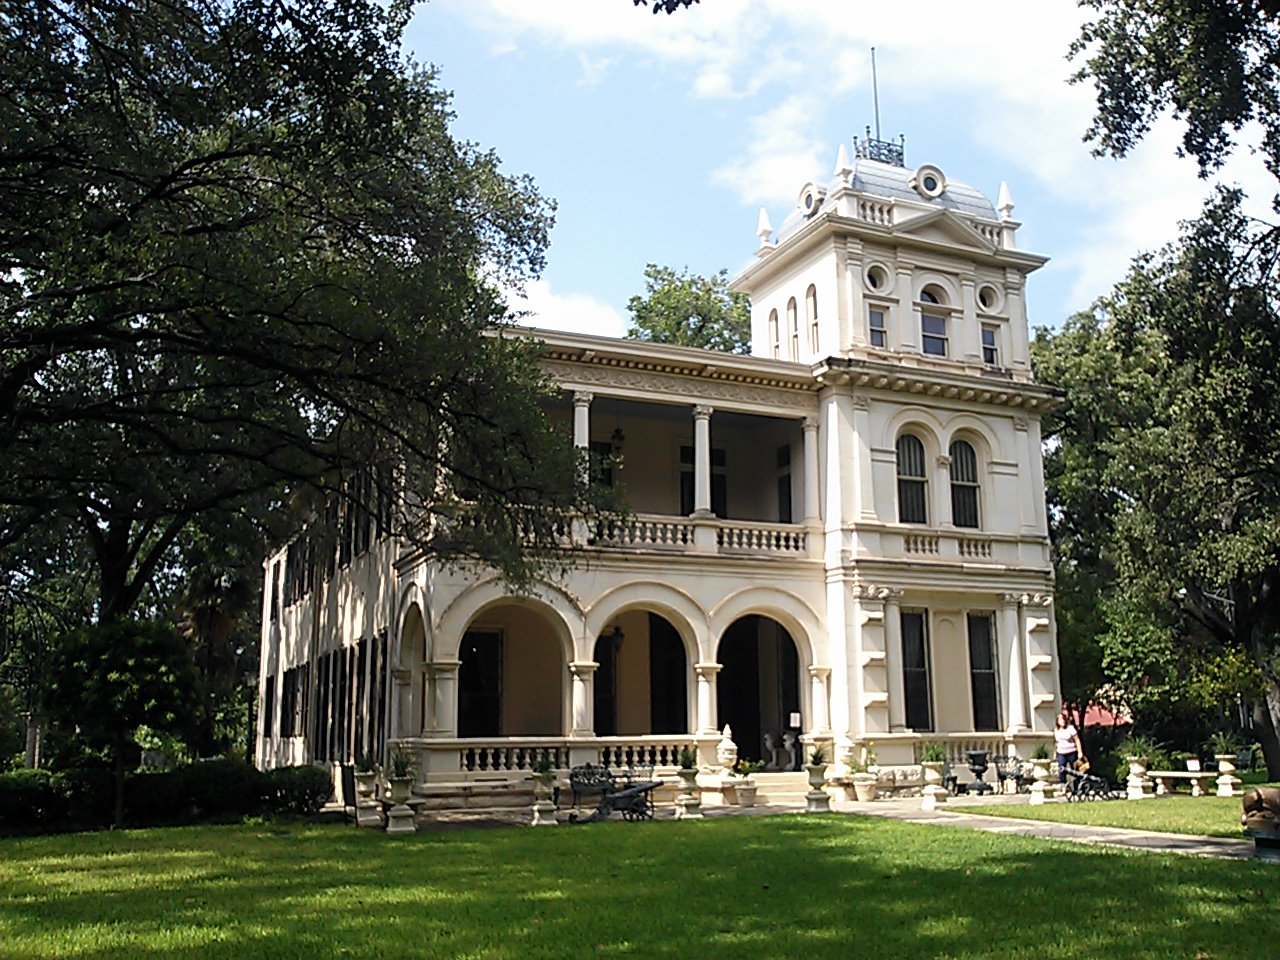 A photo of the King William home of preservationist and collector Walter Nold Mathis in San Antonio, Texas.